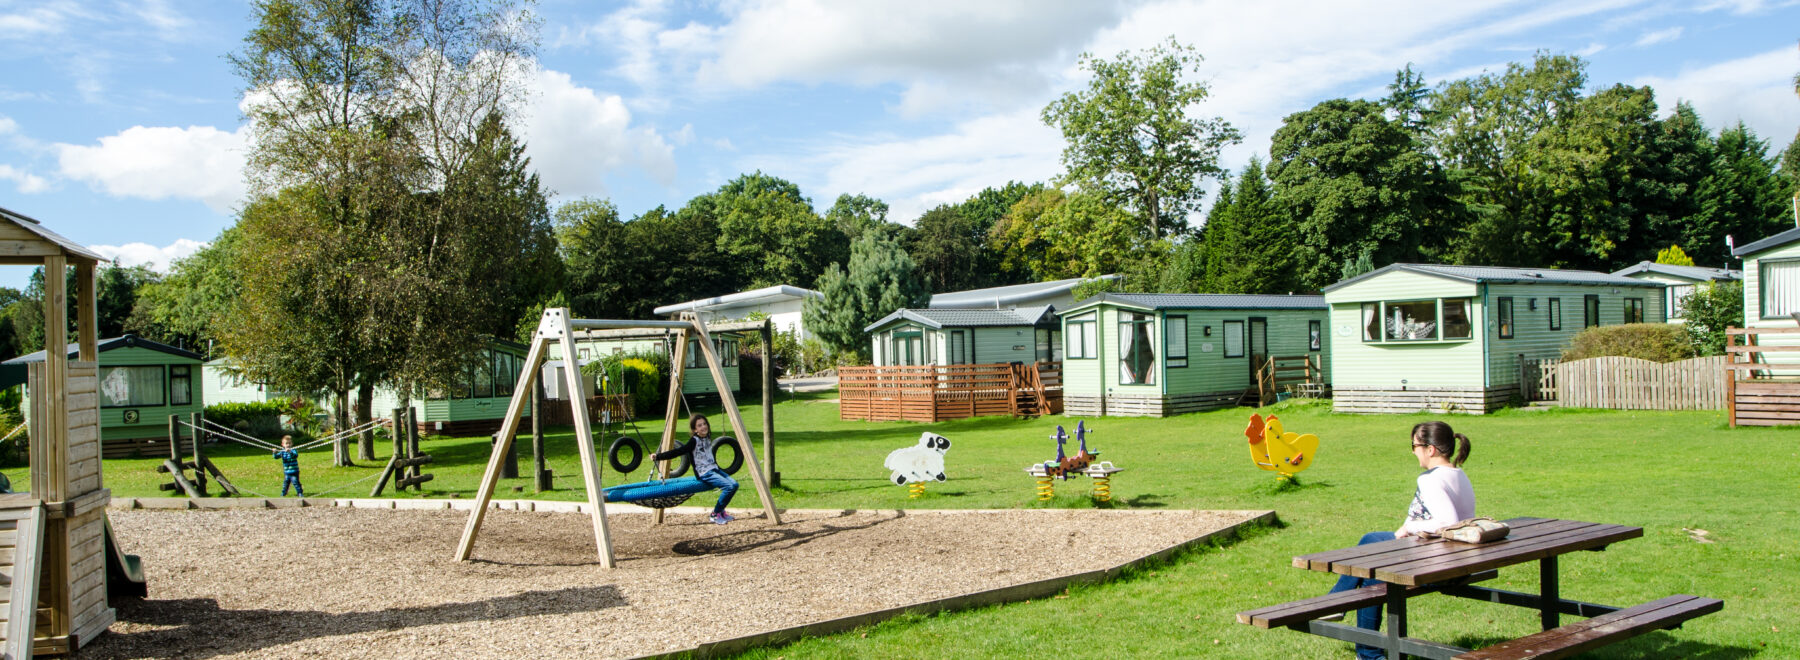 Play area at Fell End